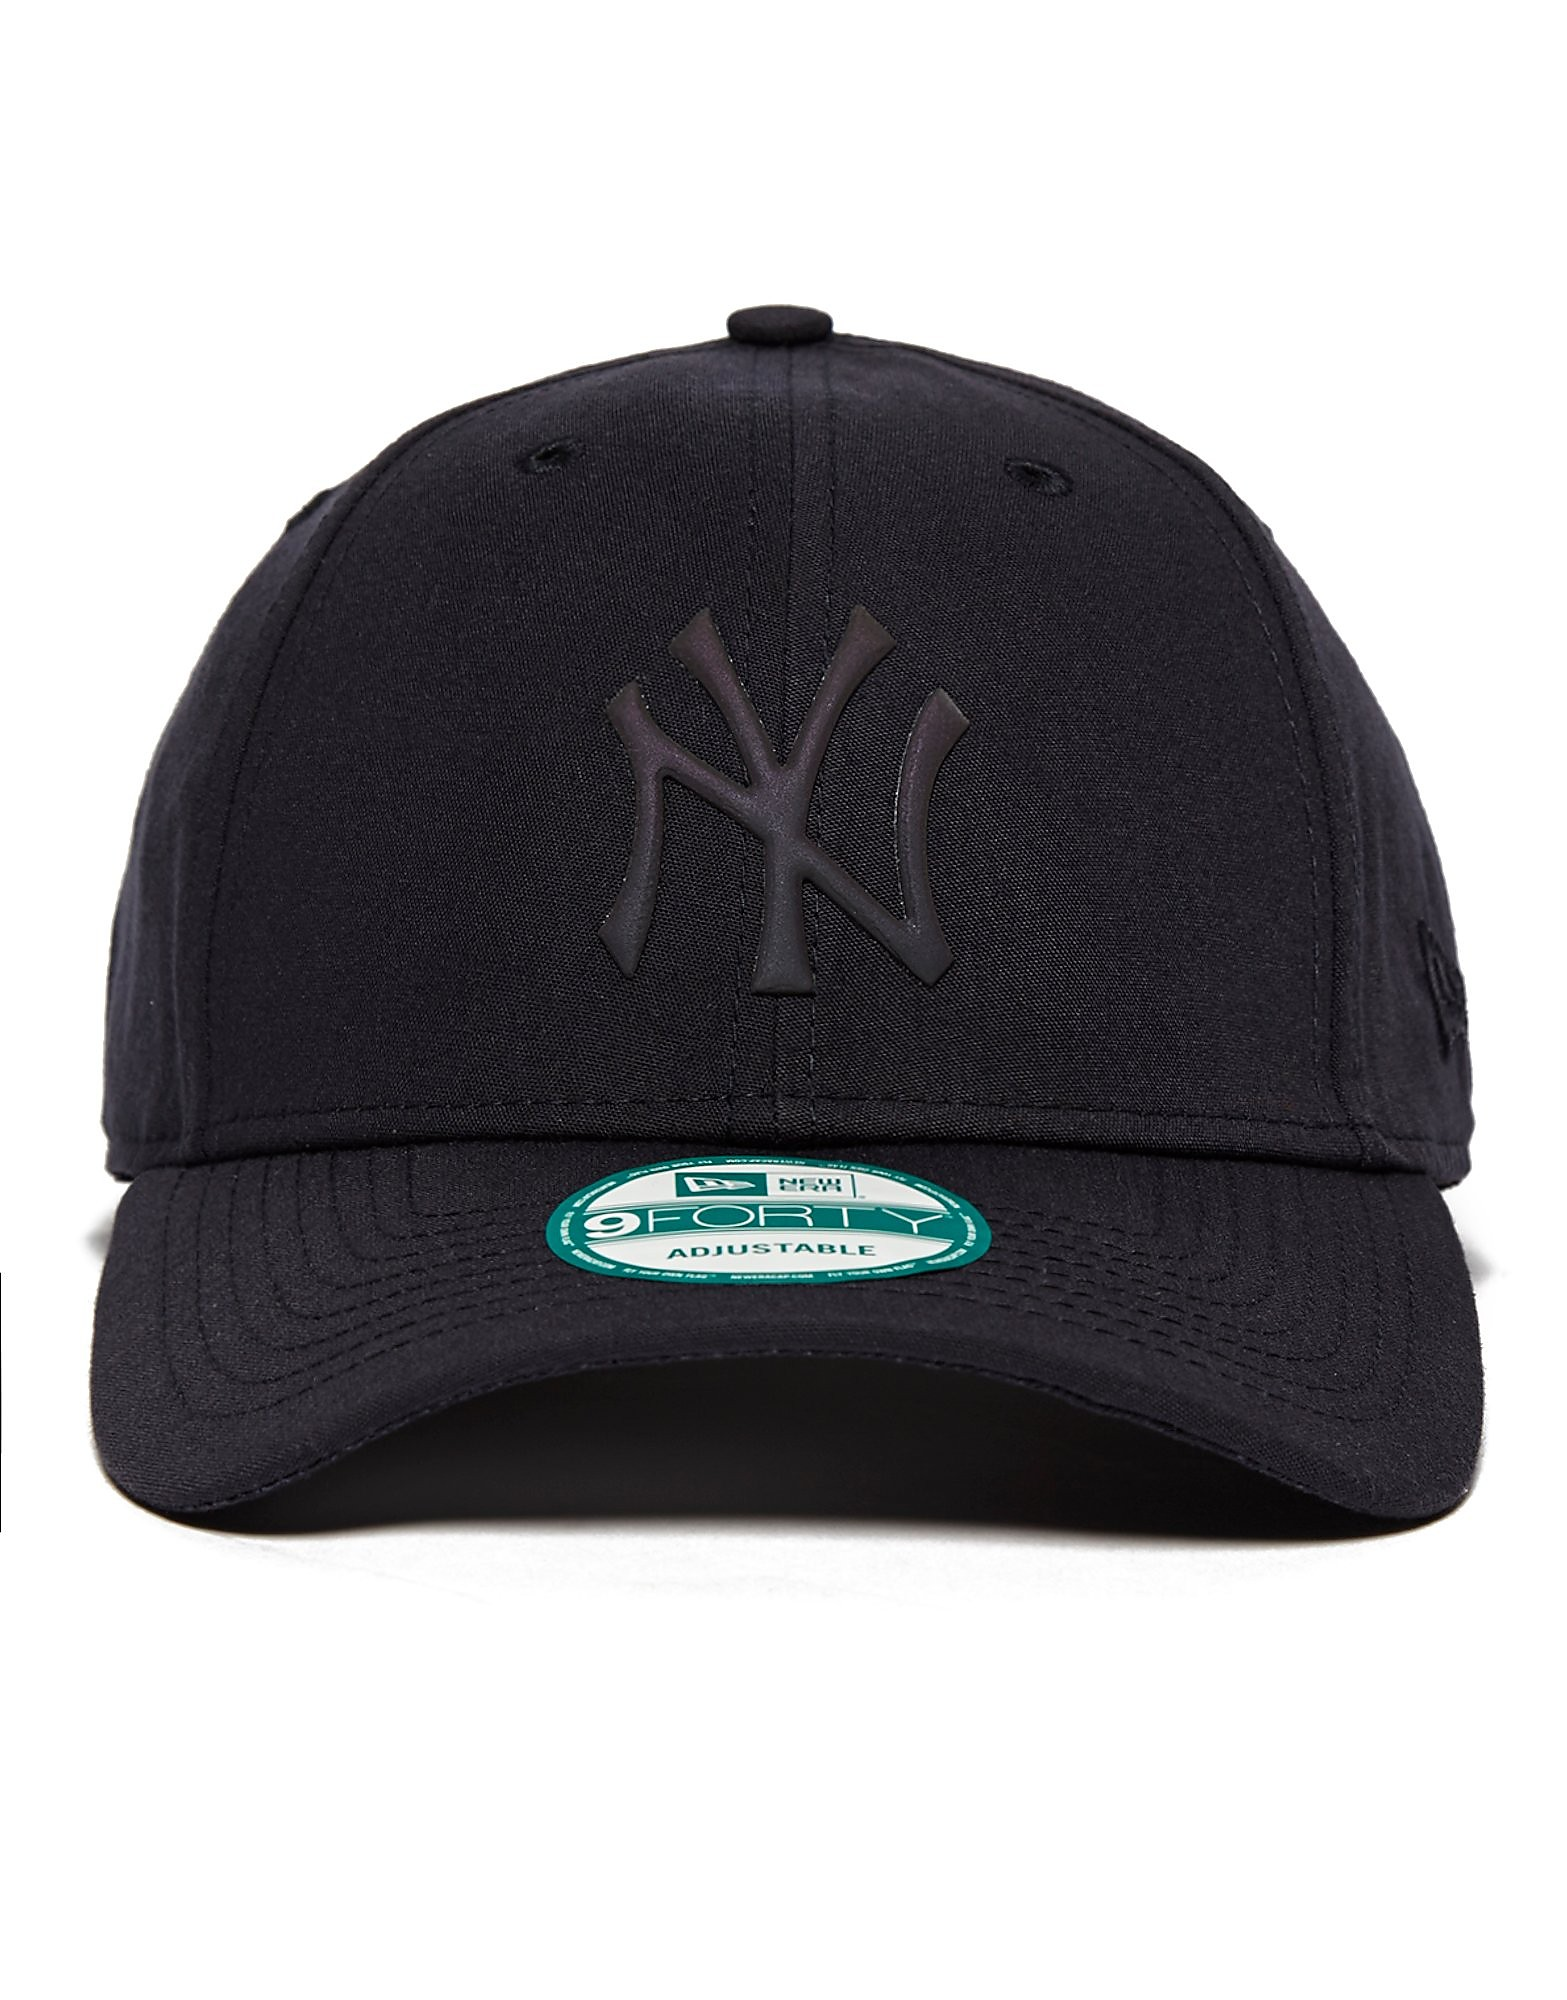 New Era 9FORTY MLB New York Yankees Cap